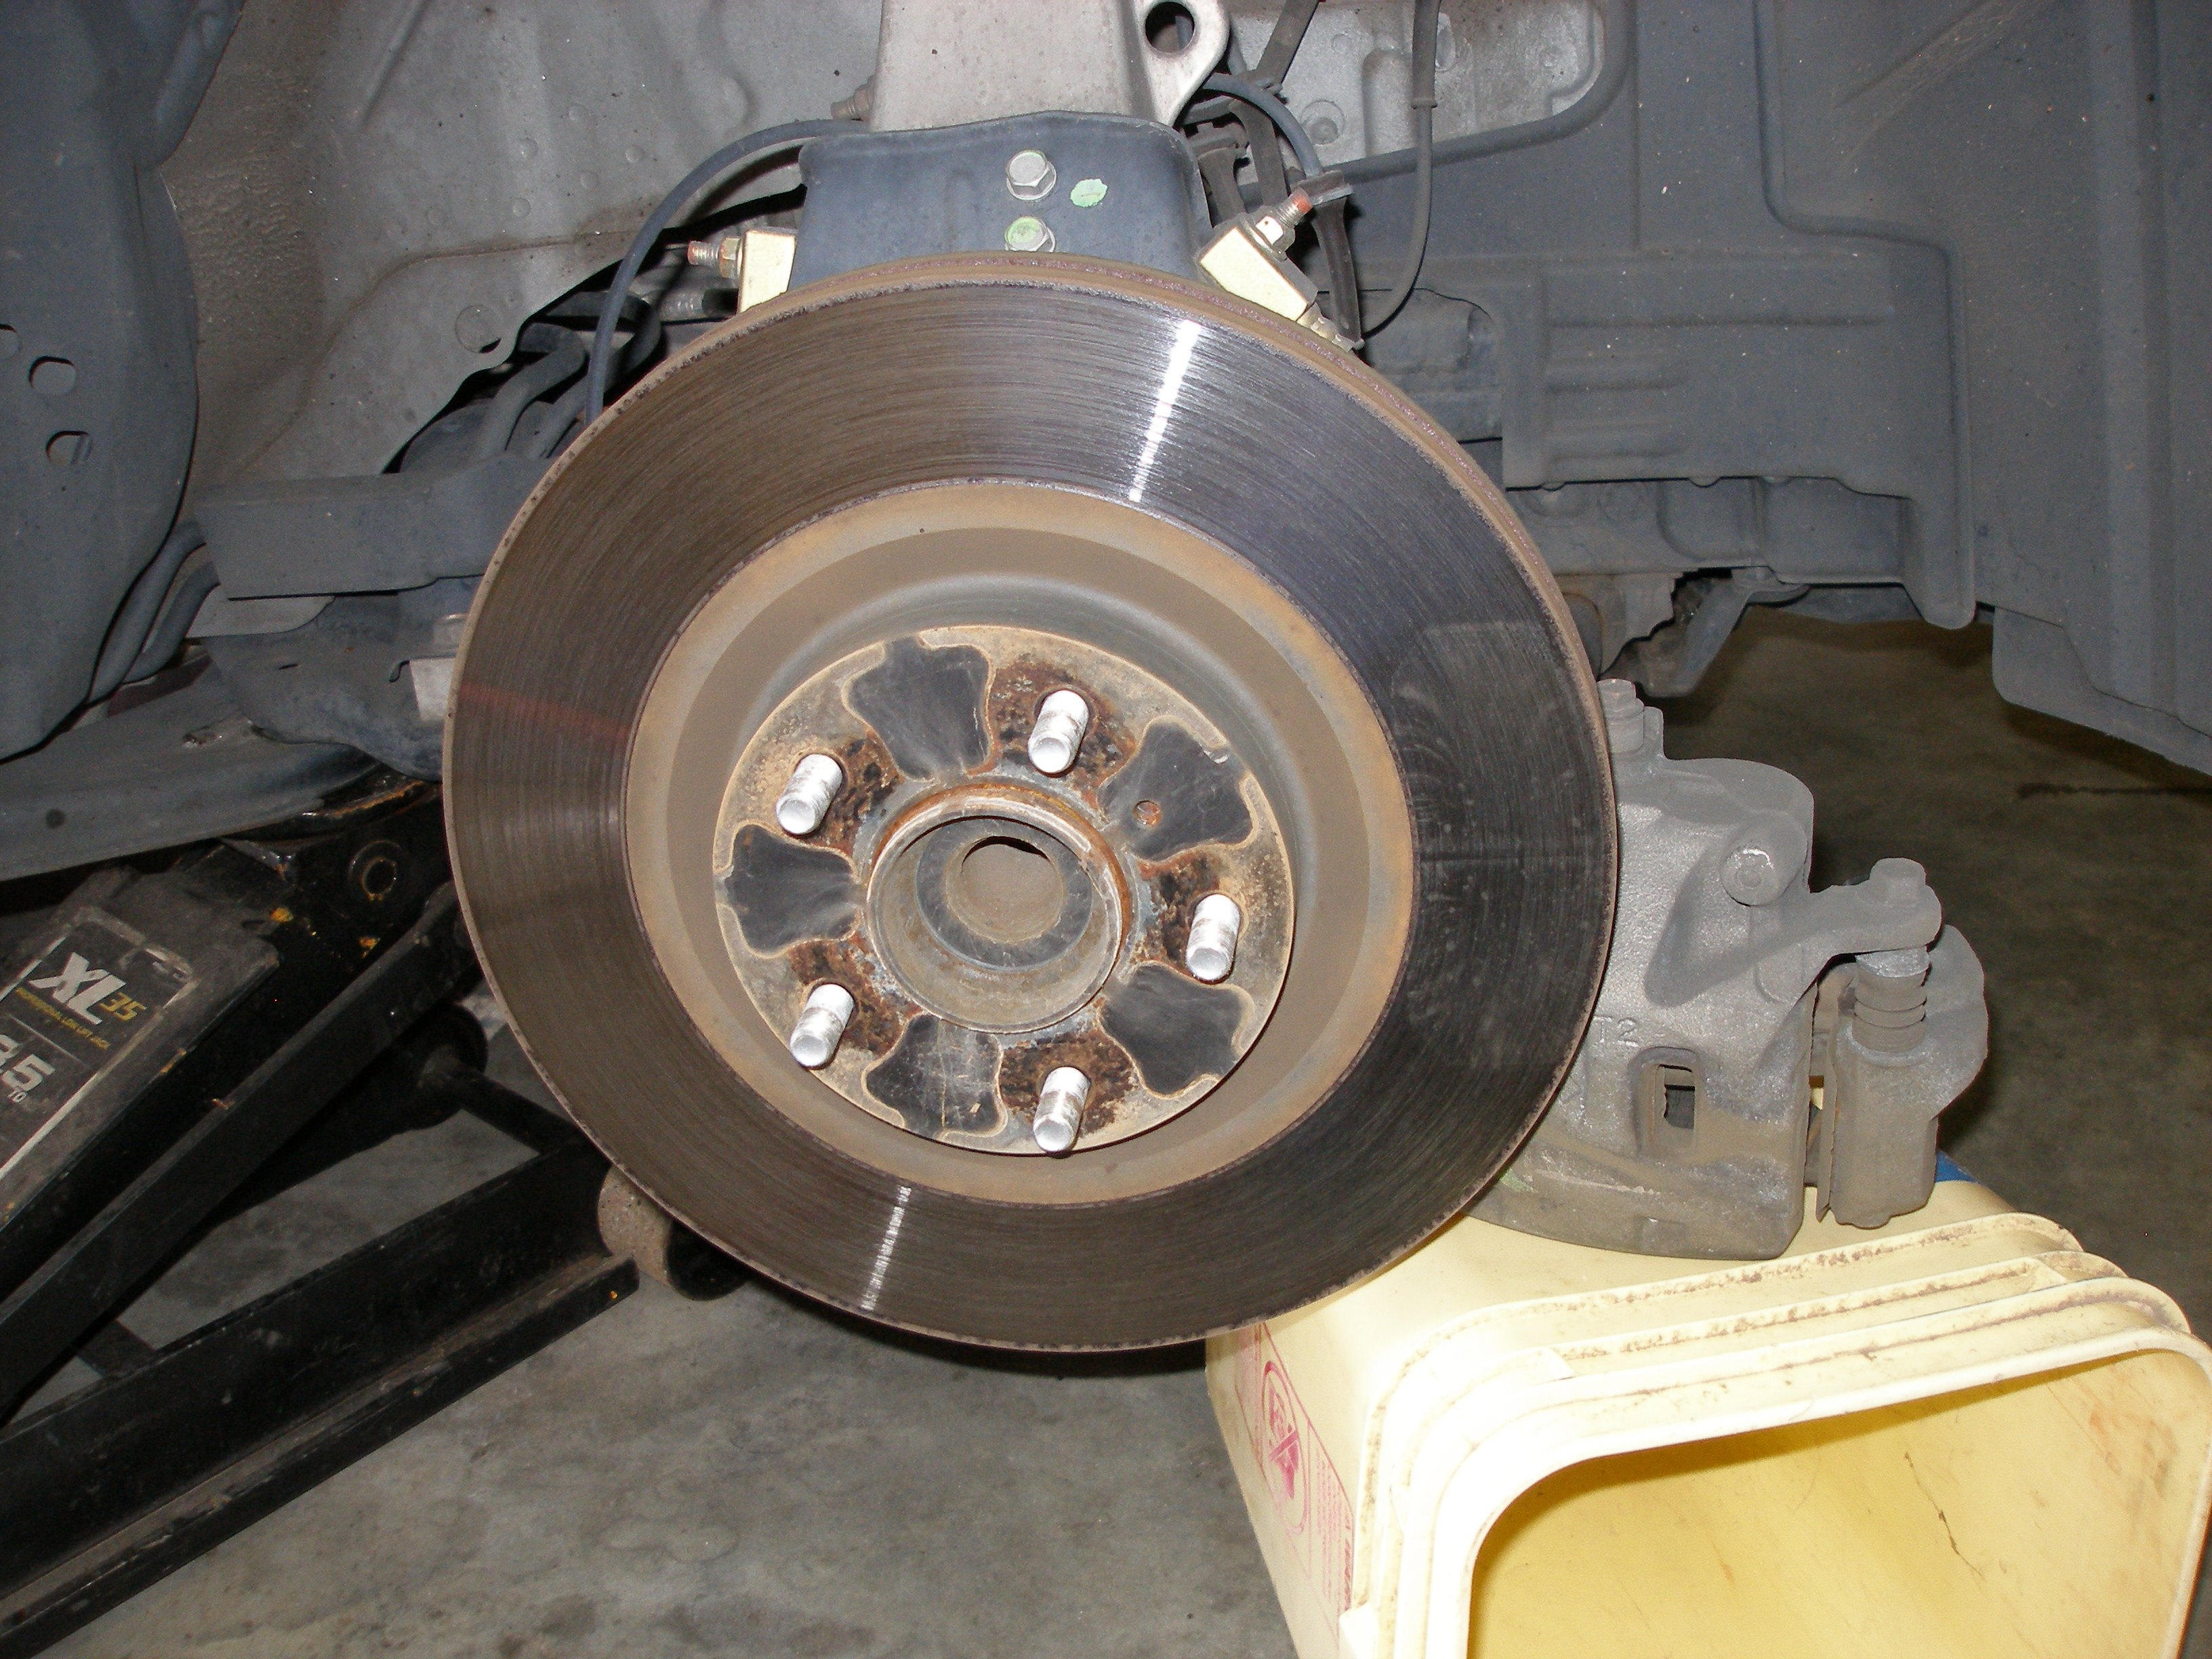 Cost Of Brake Pads >> How do you diagnose wheel bearing noise? - Nissan Forum ...